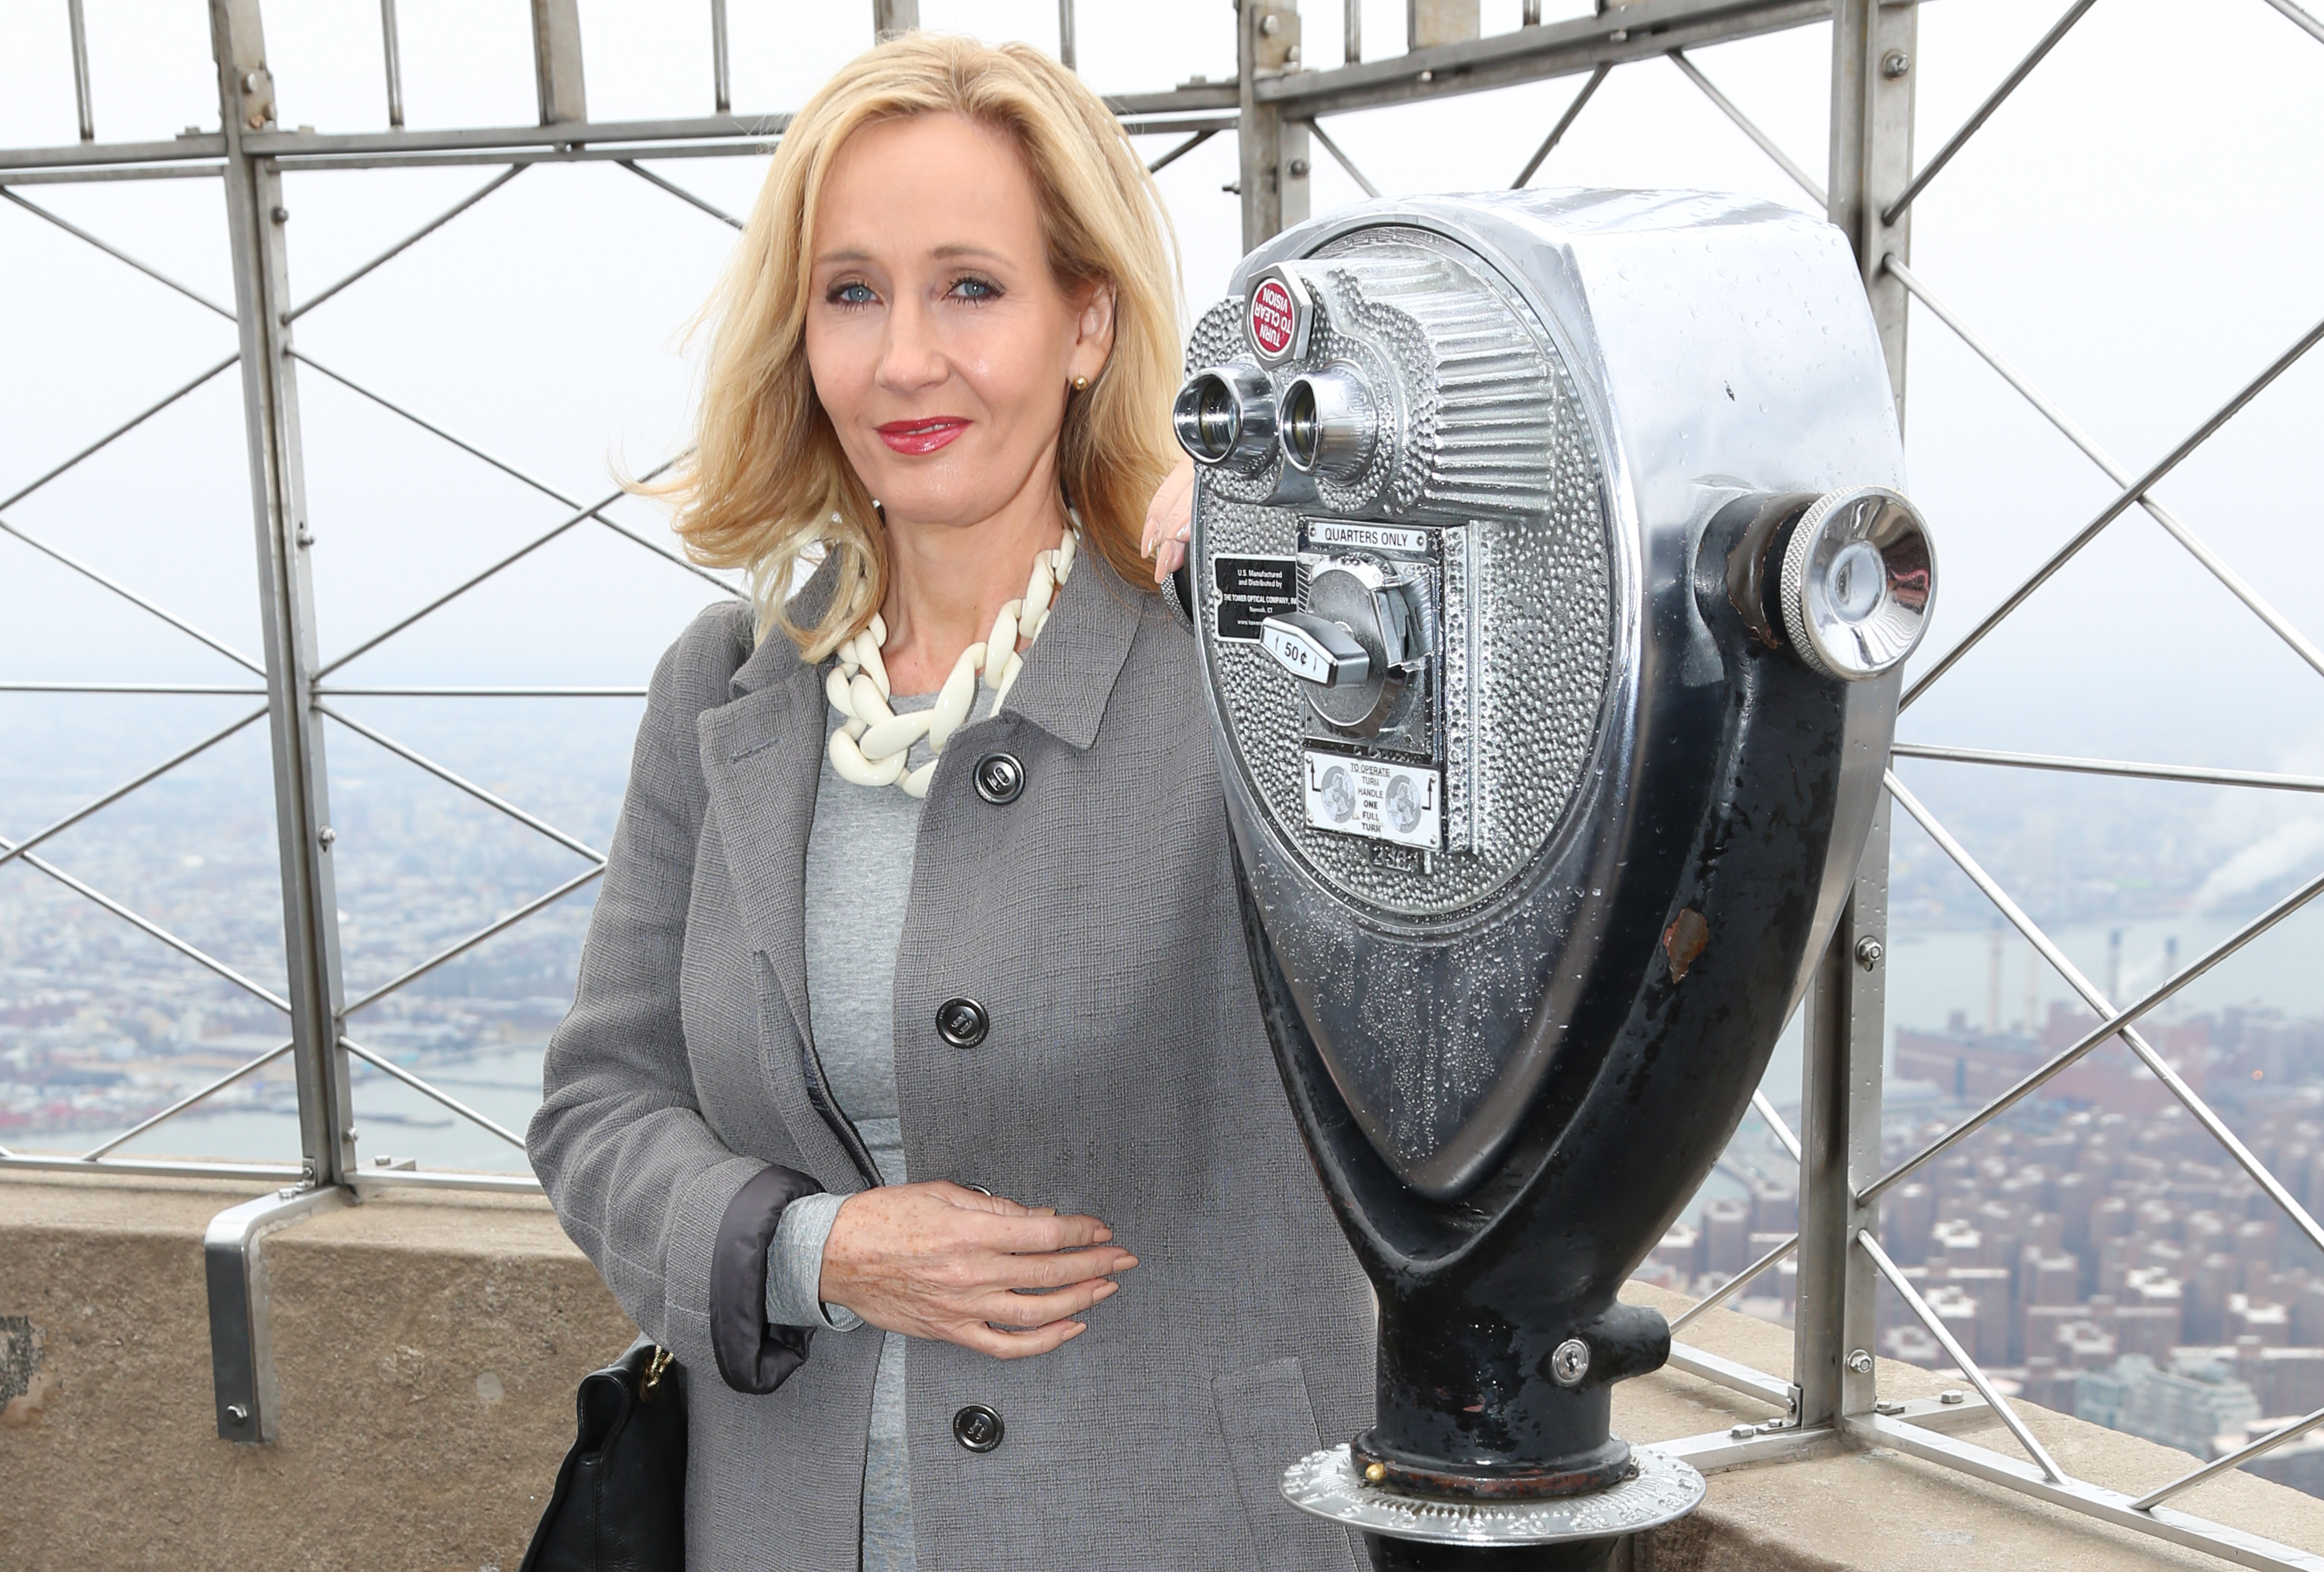 J.K. Rowling illuminates the Empire State Building to mark the USA launch of her non-profit children's organization, Lumos, on April 9, 2015 in New York City.